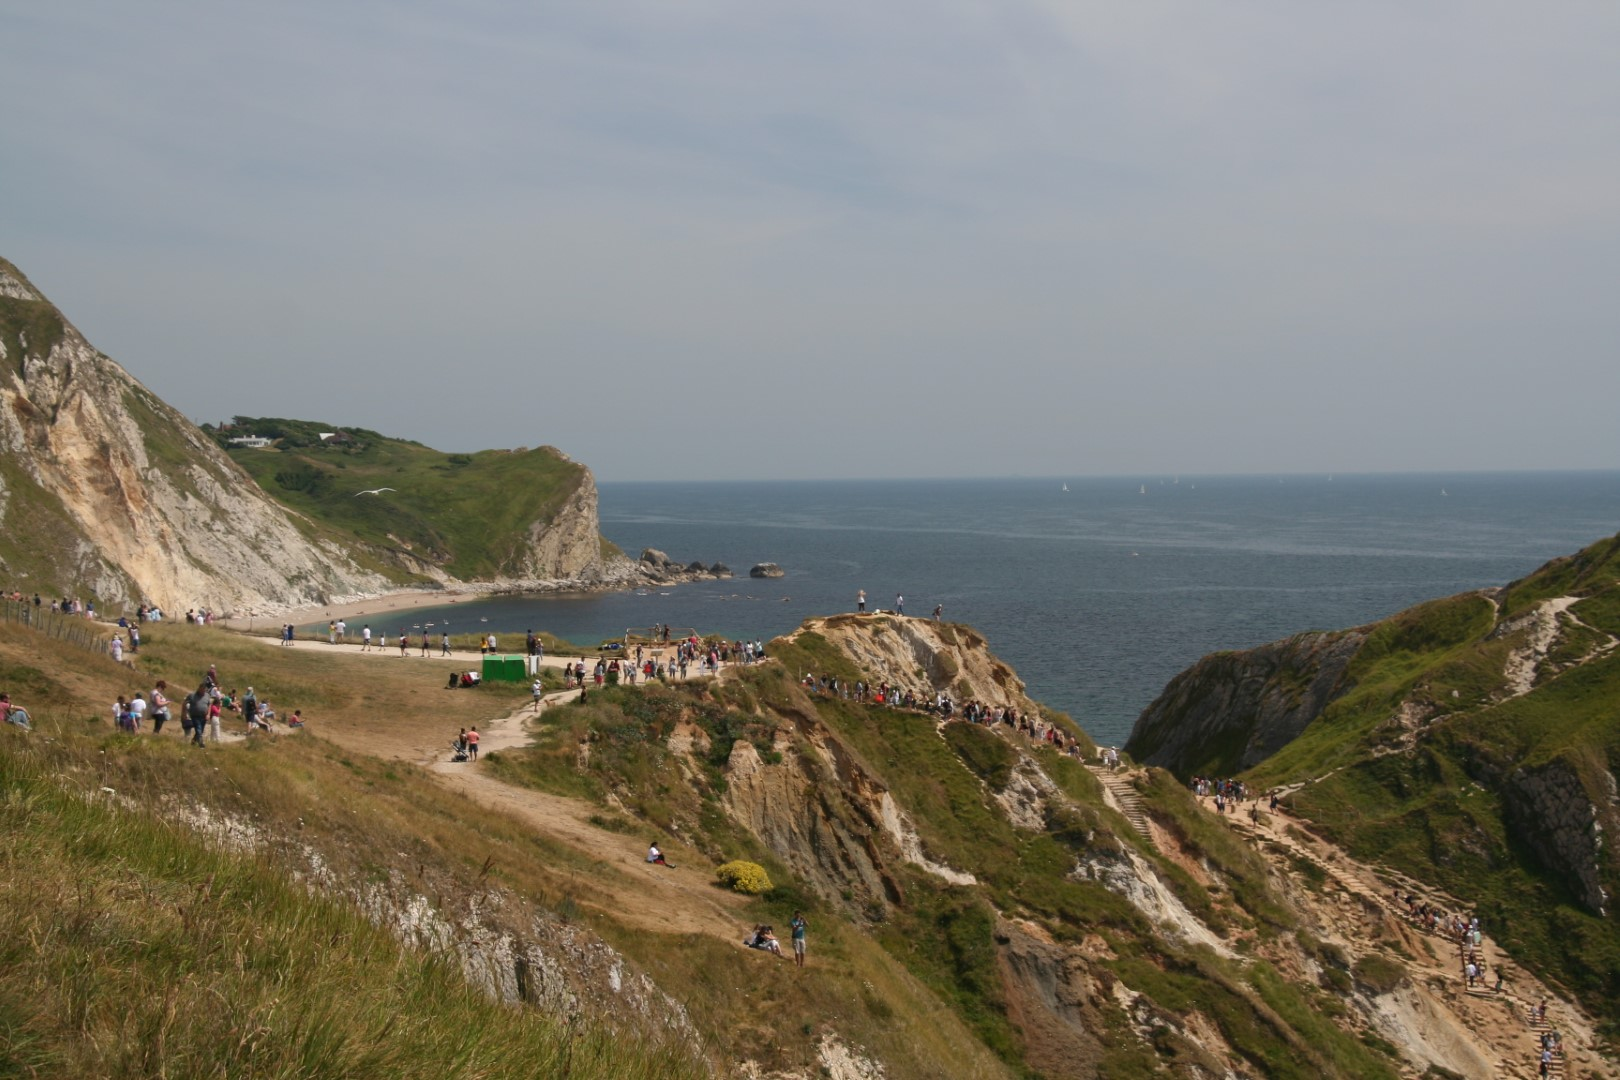 The area around Durdle Door in the summer with a queue down to the beach.